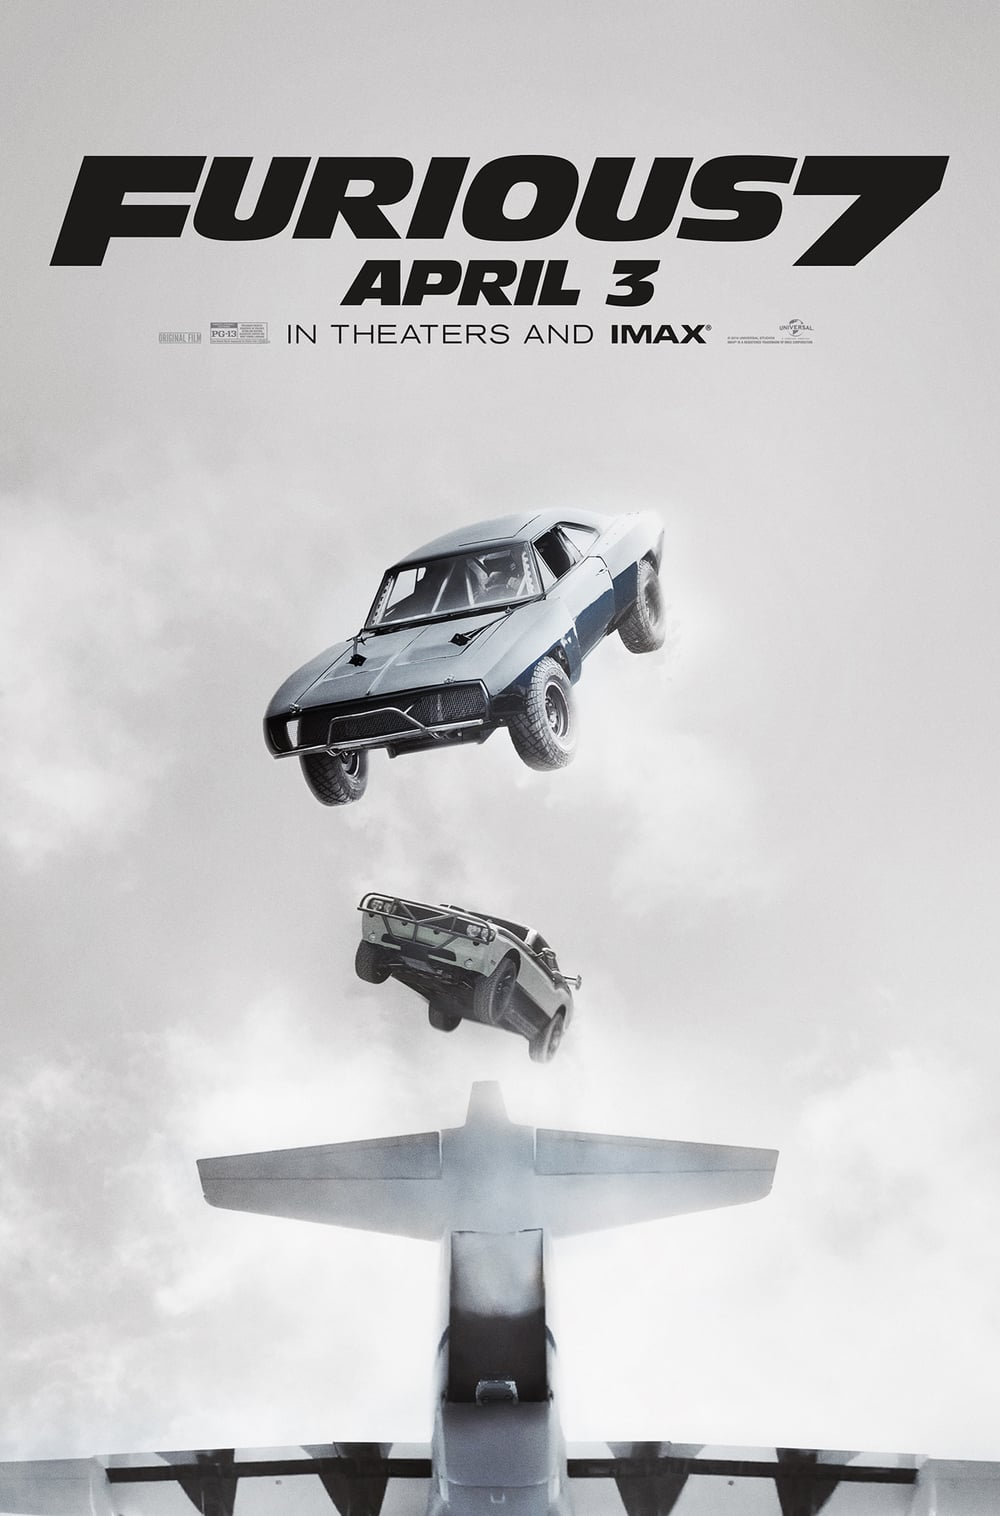 Furious 7's winning streak at Box Office continues in third week